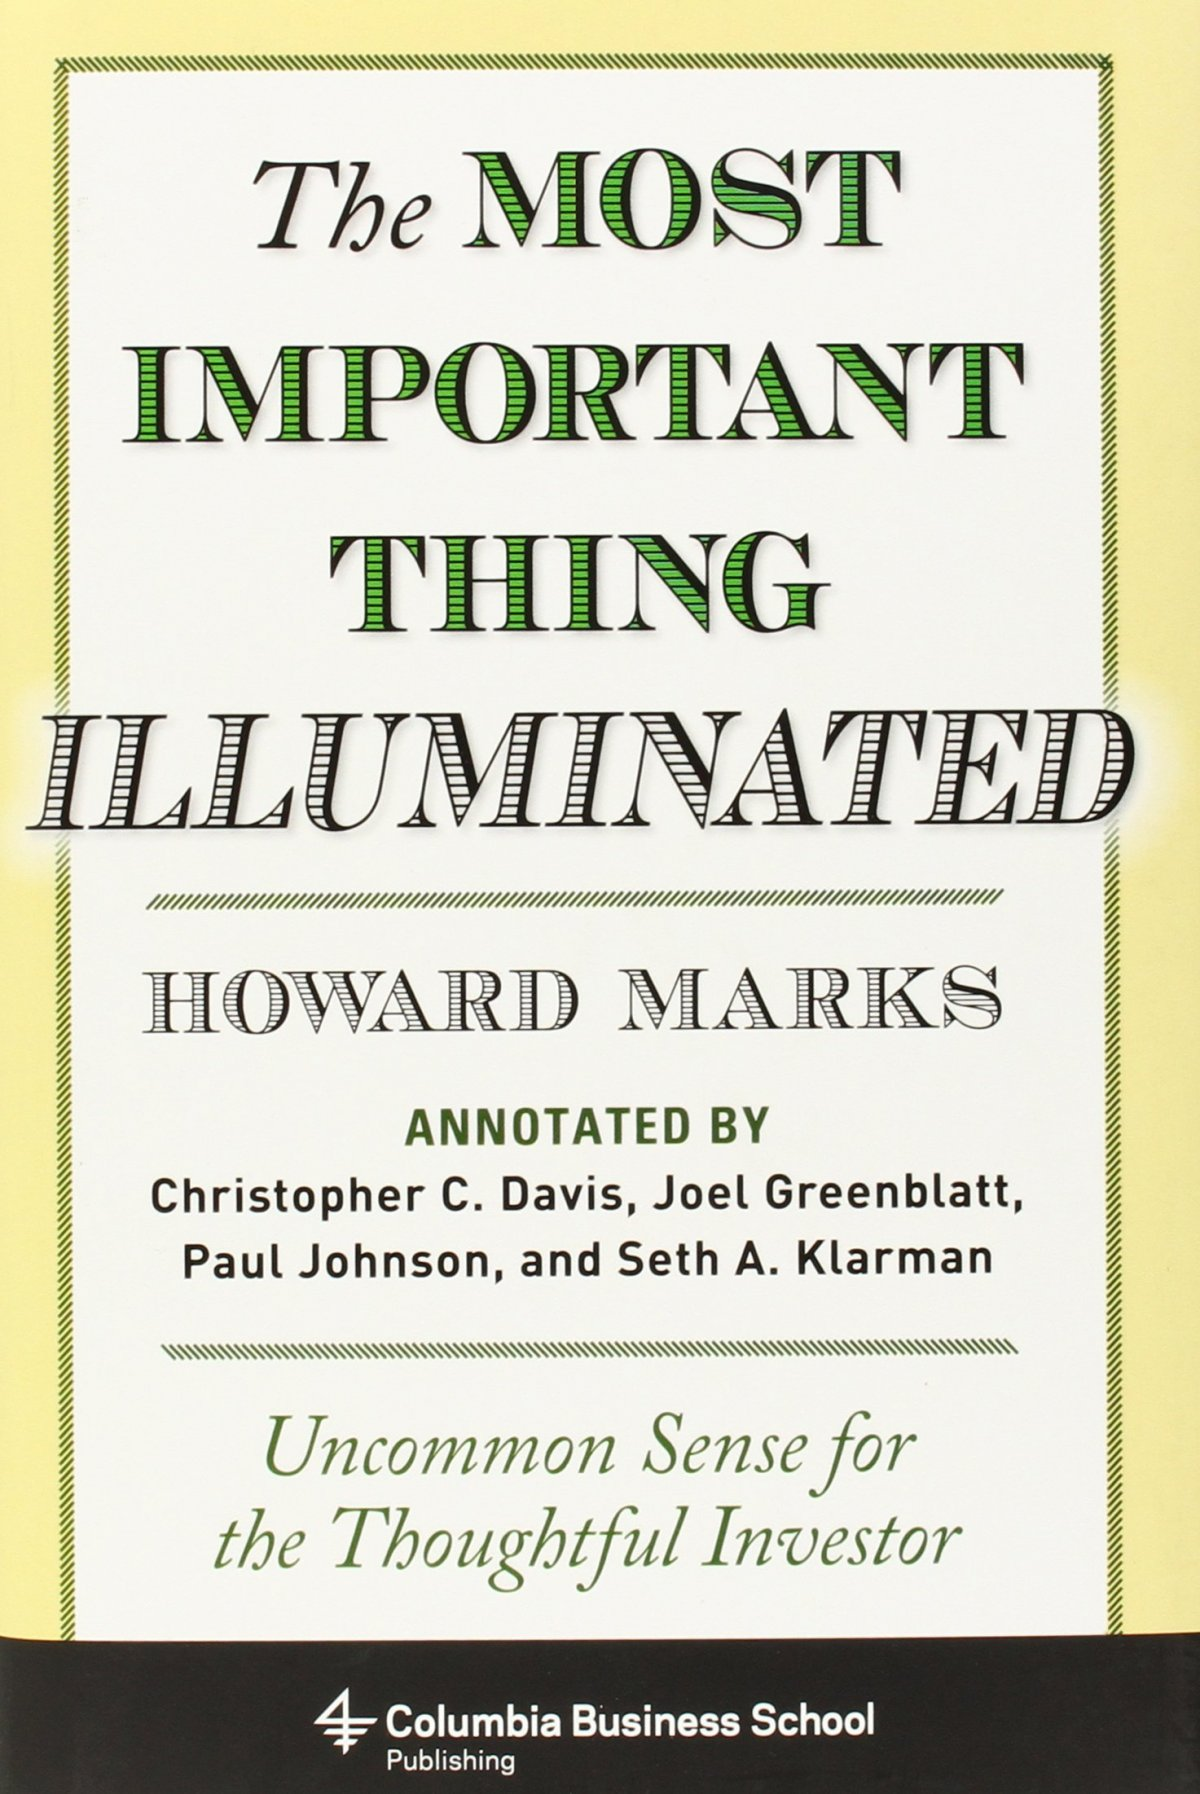 the-most-important-thing-illuminated-by-howard-marks